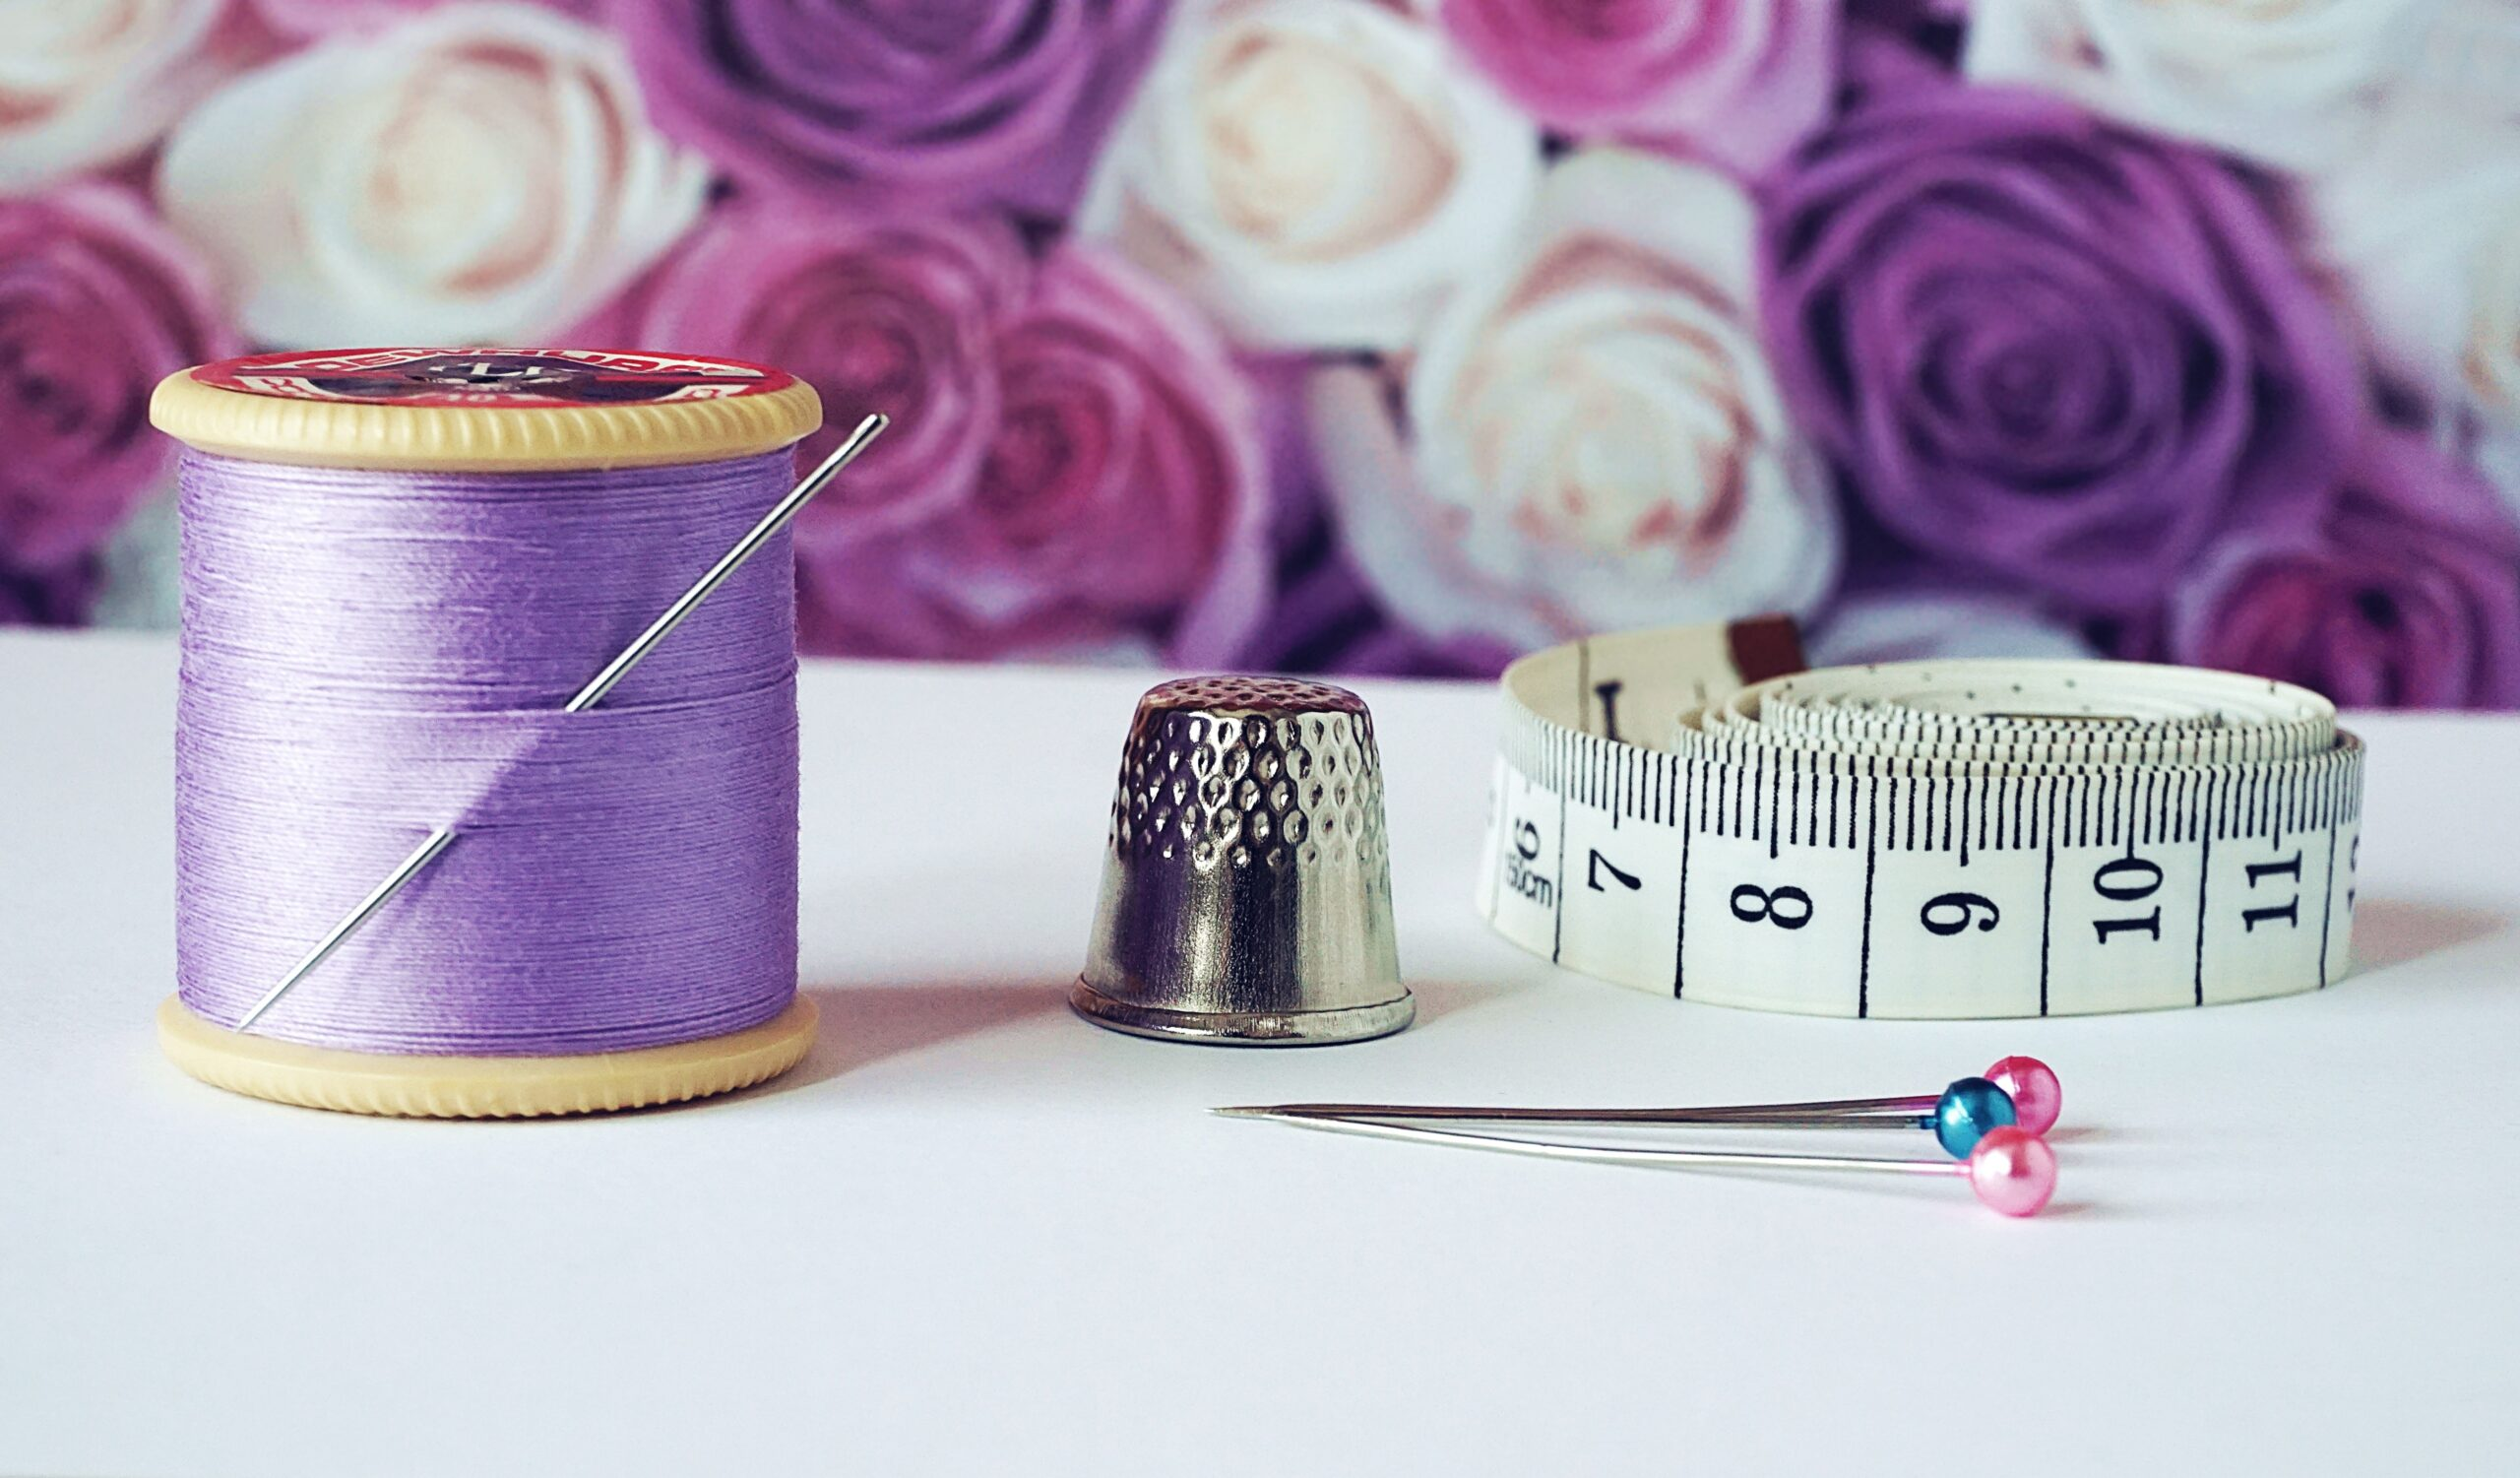 spool-of-purple-thread-needle-thimble